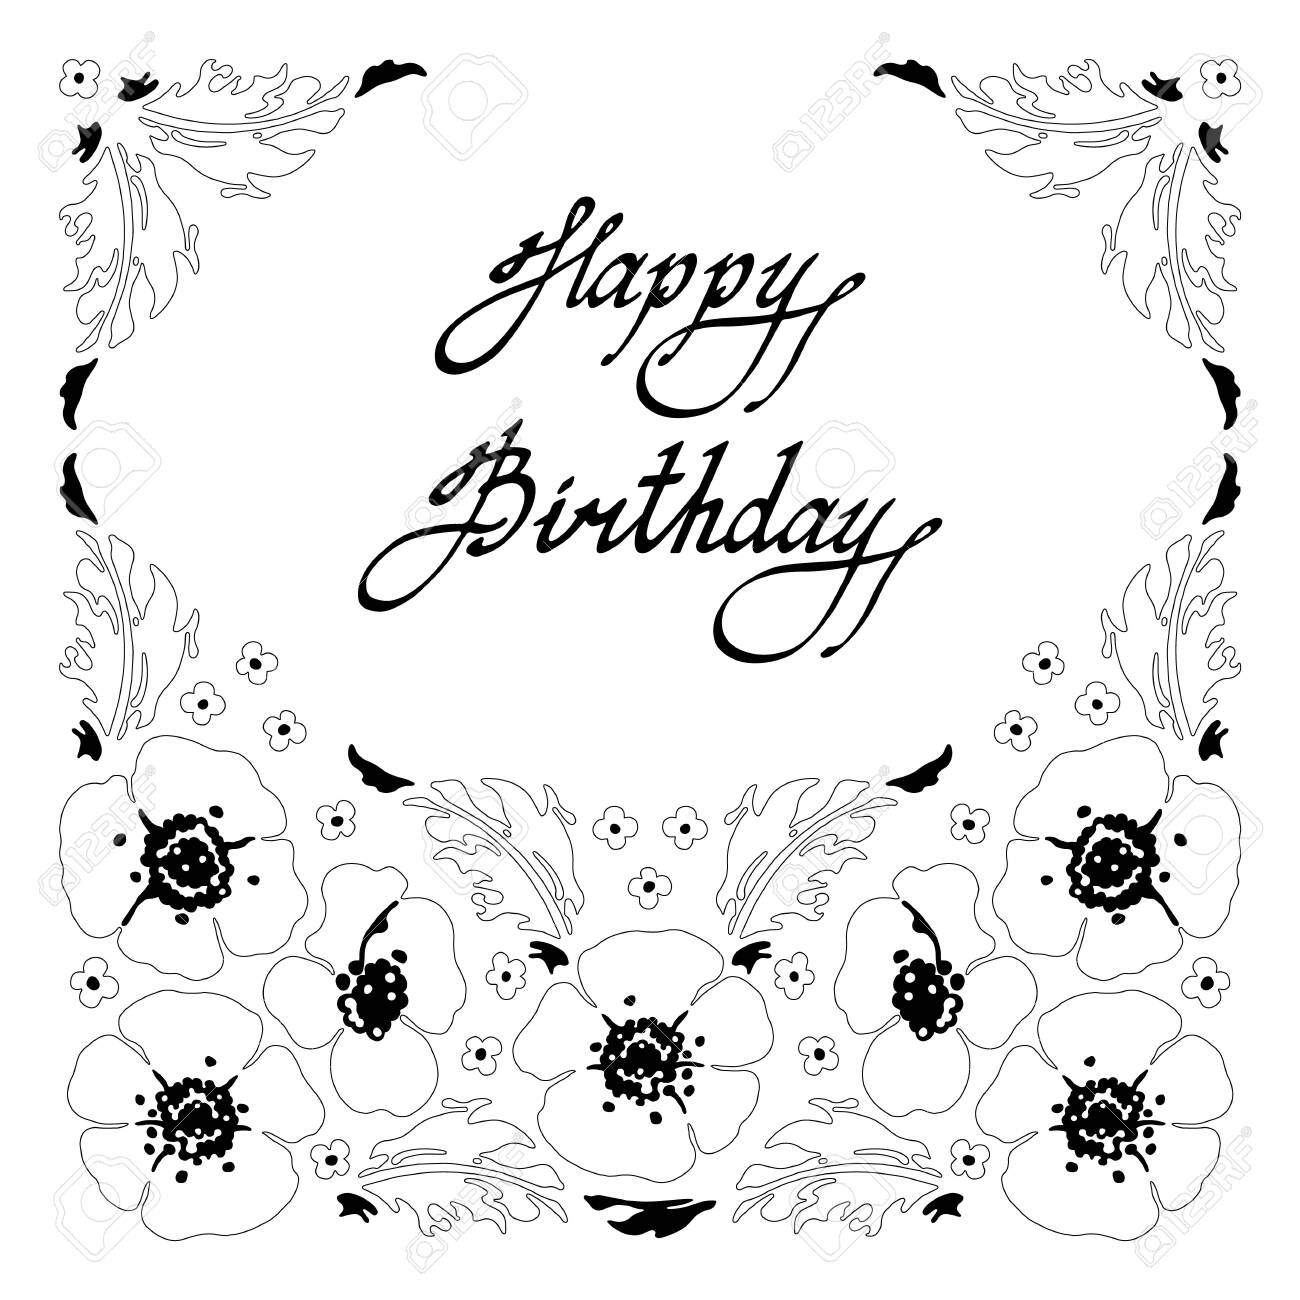 Happy Birthday Card. Black and white sketch of herbs and wildflowers..